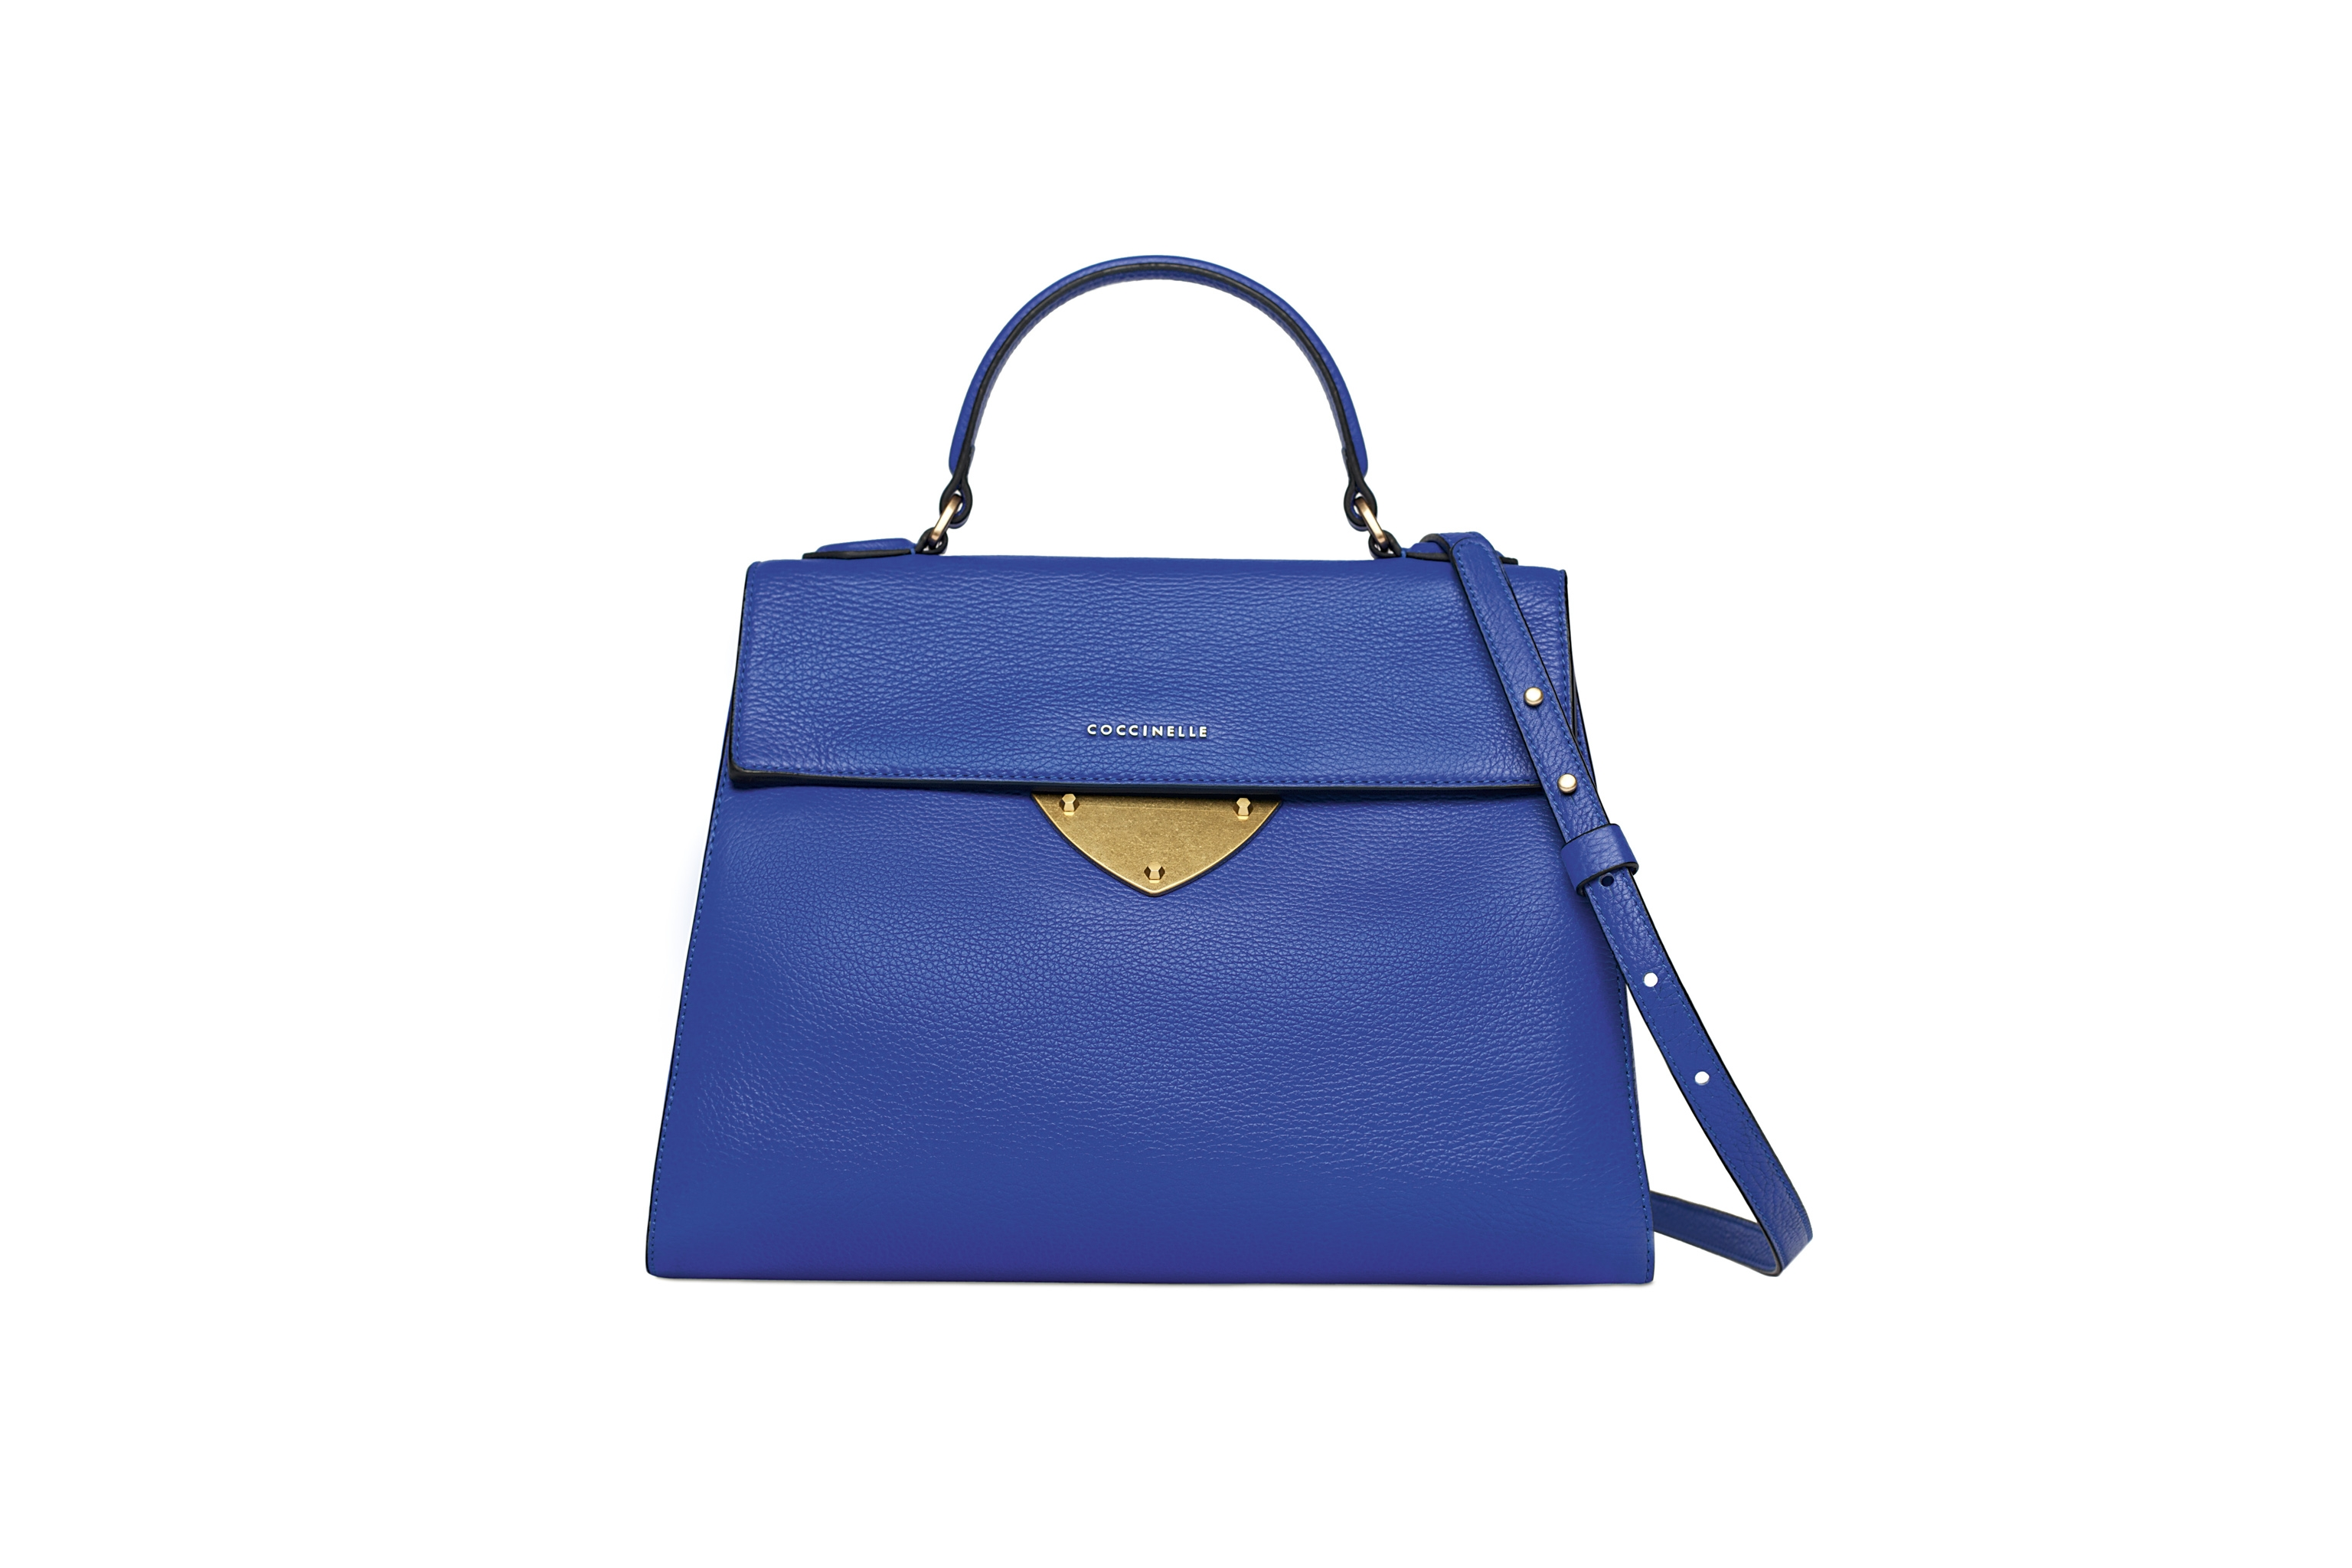 coccinelle launches new icon bag b14